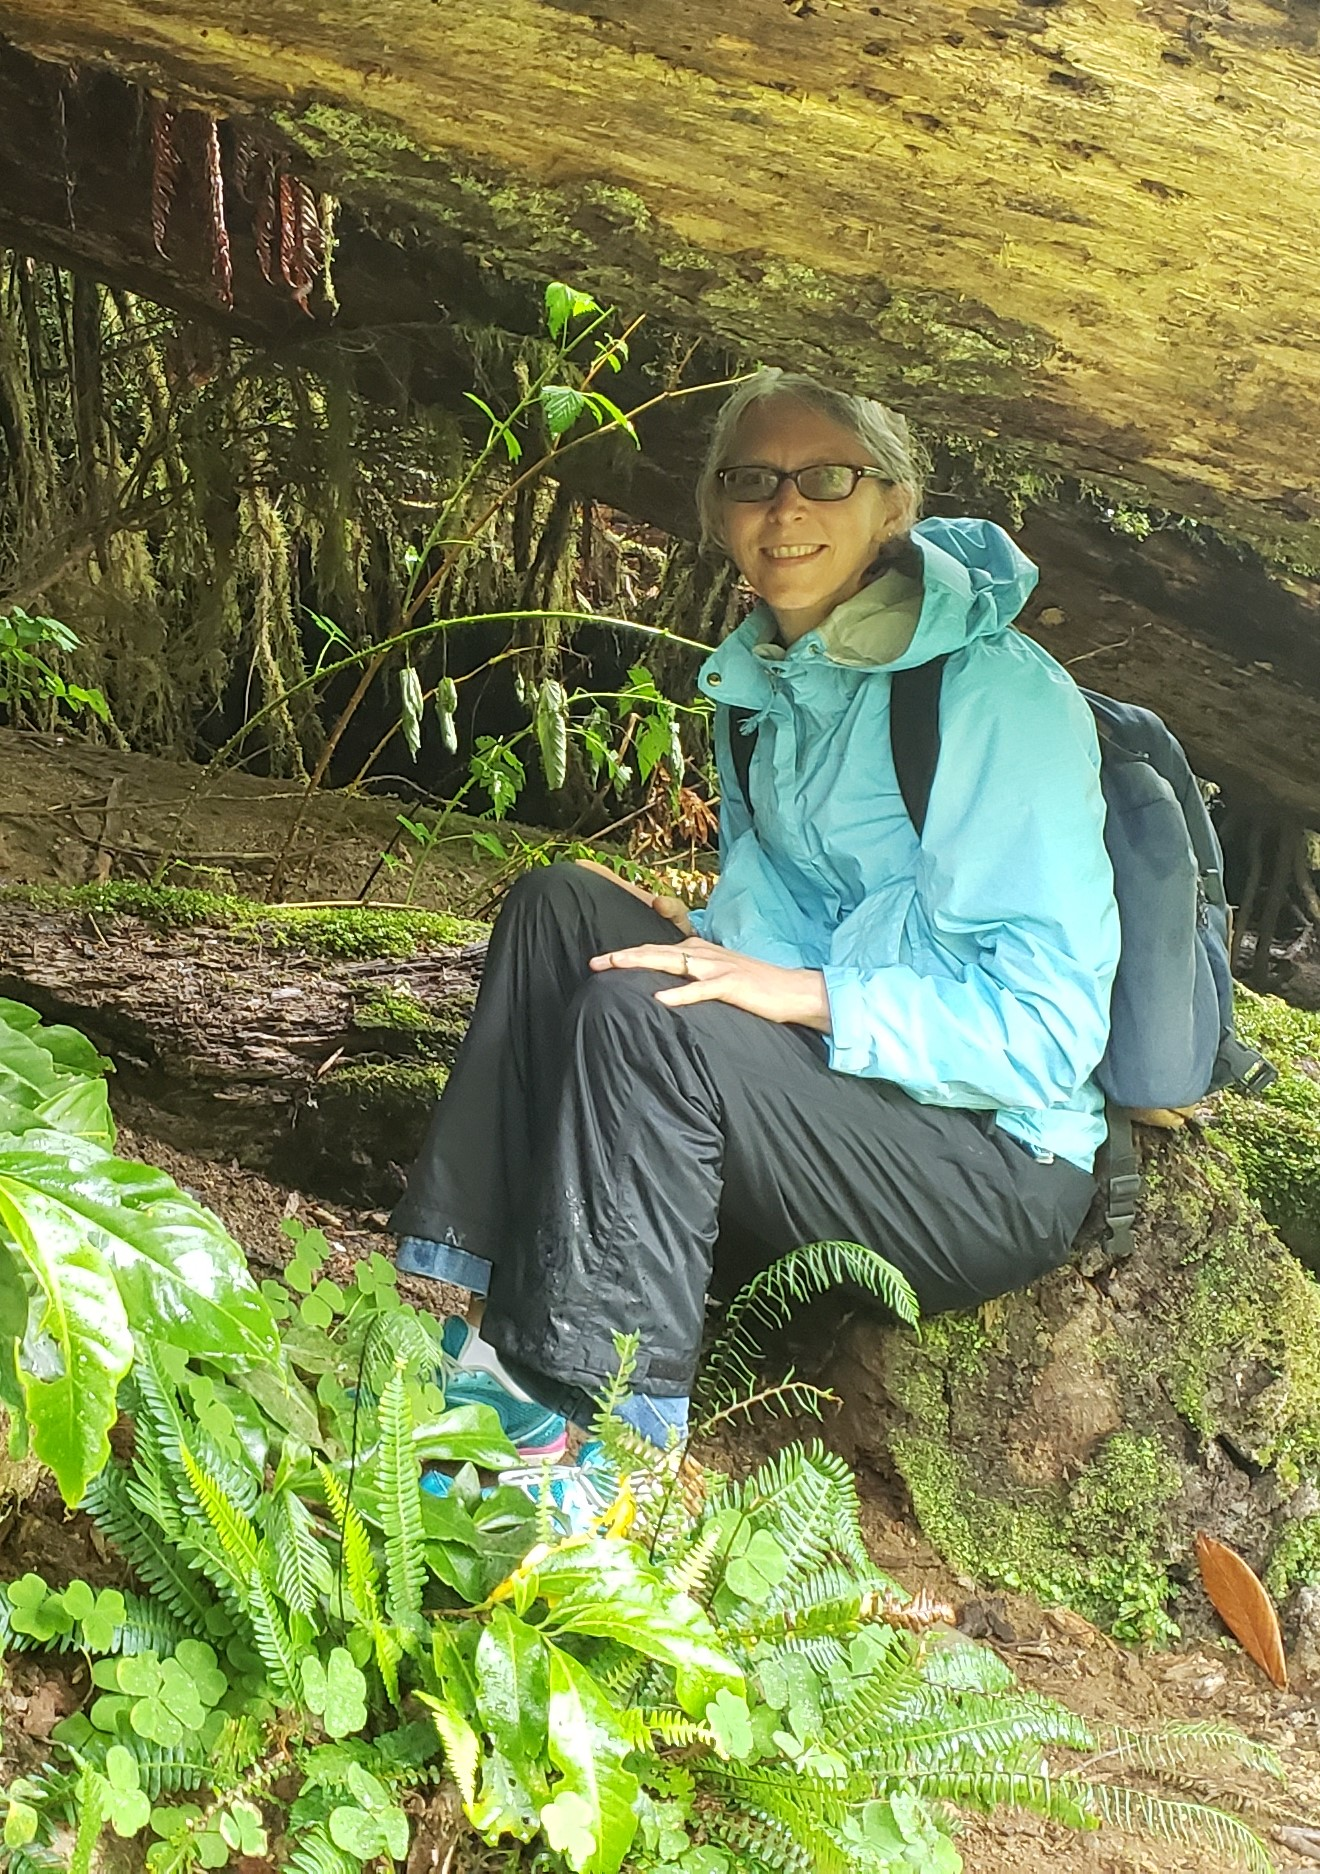 A smiling woman sitting under a log.